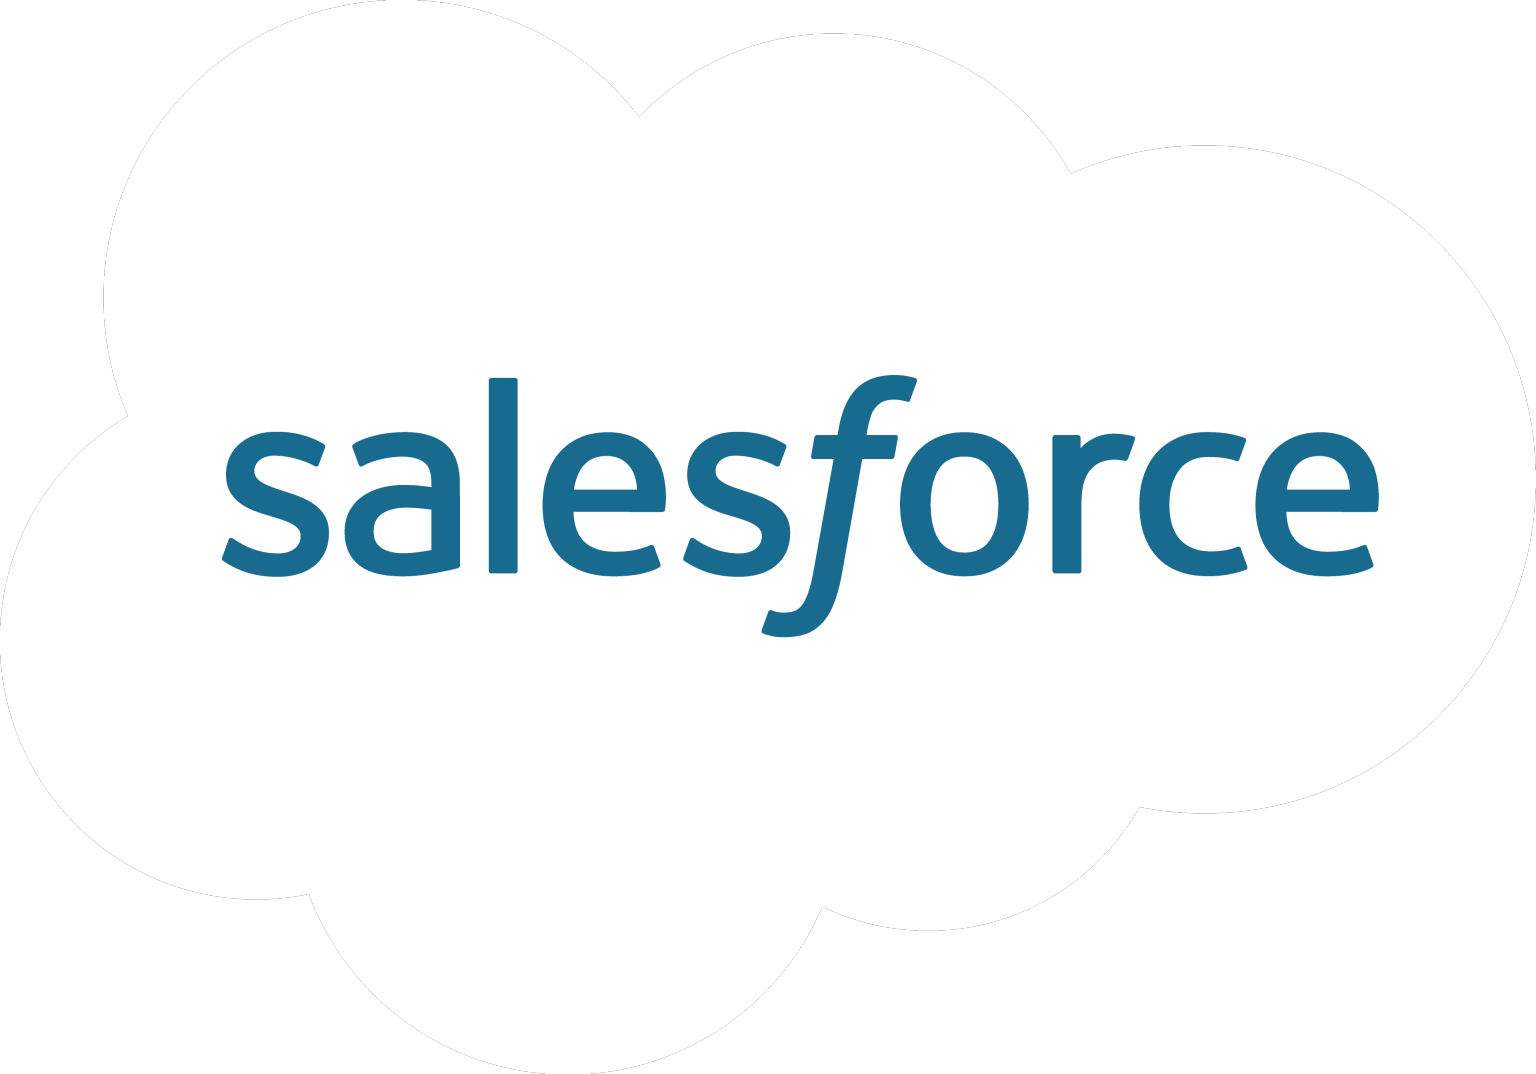 the sales force Salesforce for k-12 strengthen relationships with parents and students, streamline admissions and enrollment, and harness the power of a real-time view of students to drive success.